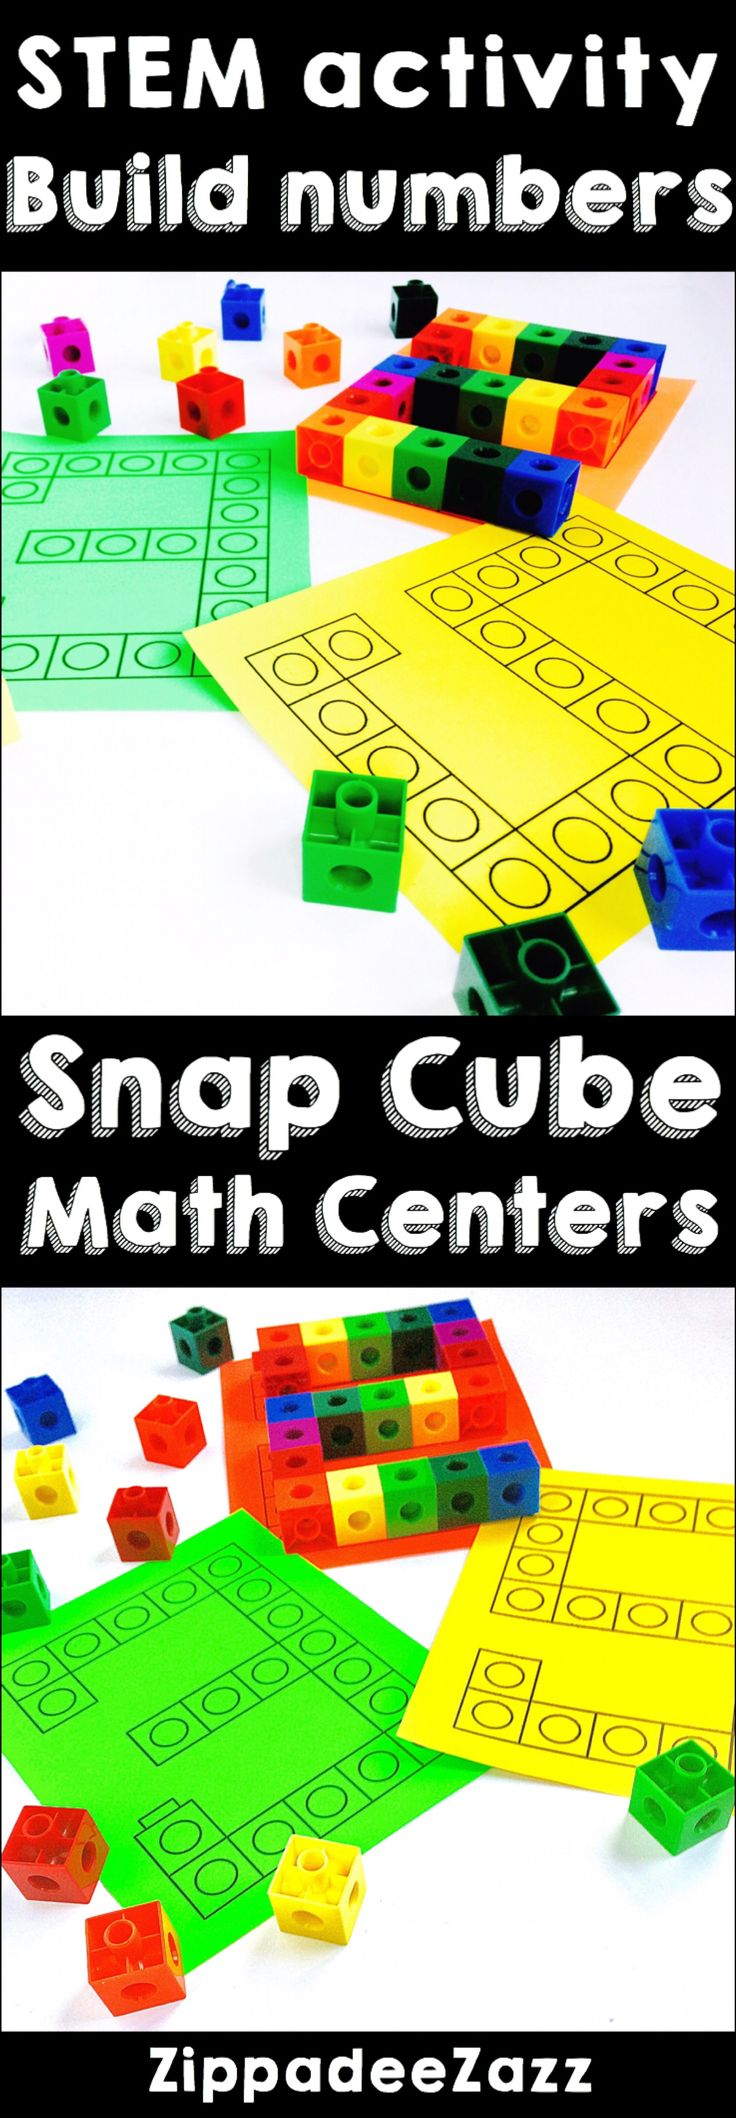 Use these snap cube math centers as a STEM activity. You can learn how to form numbers up to 5, practice building skills, number recognition, and addition by counting the amount of snap cubes per number built.